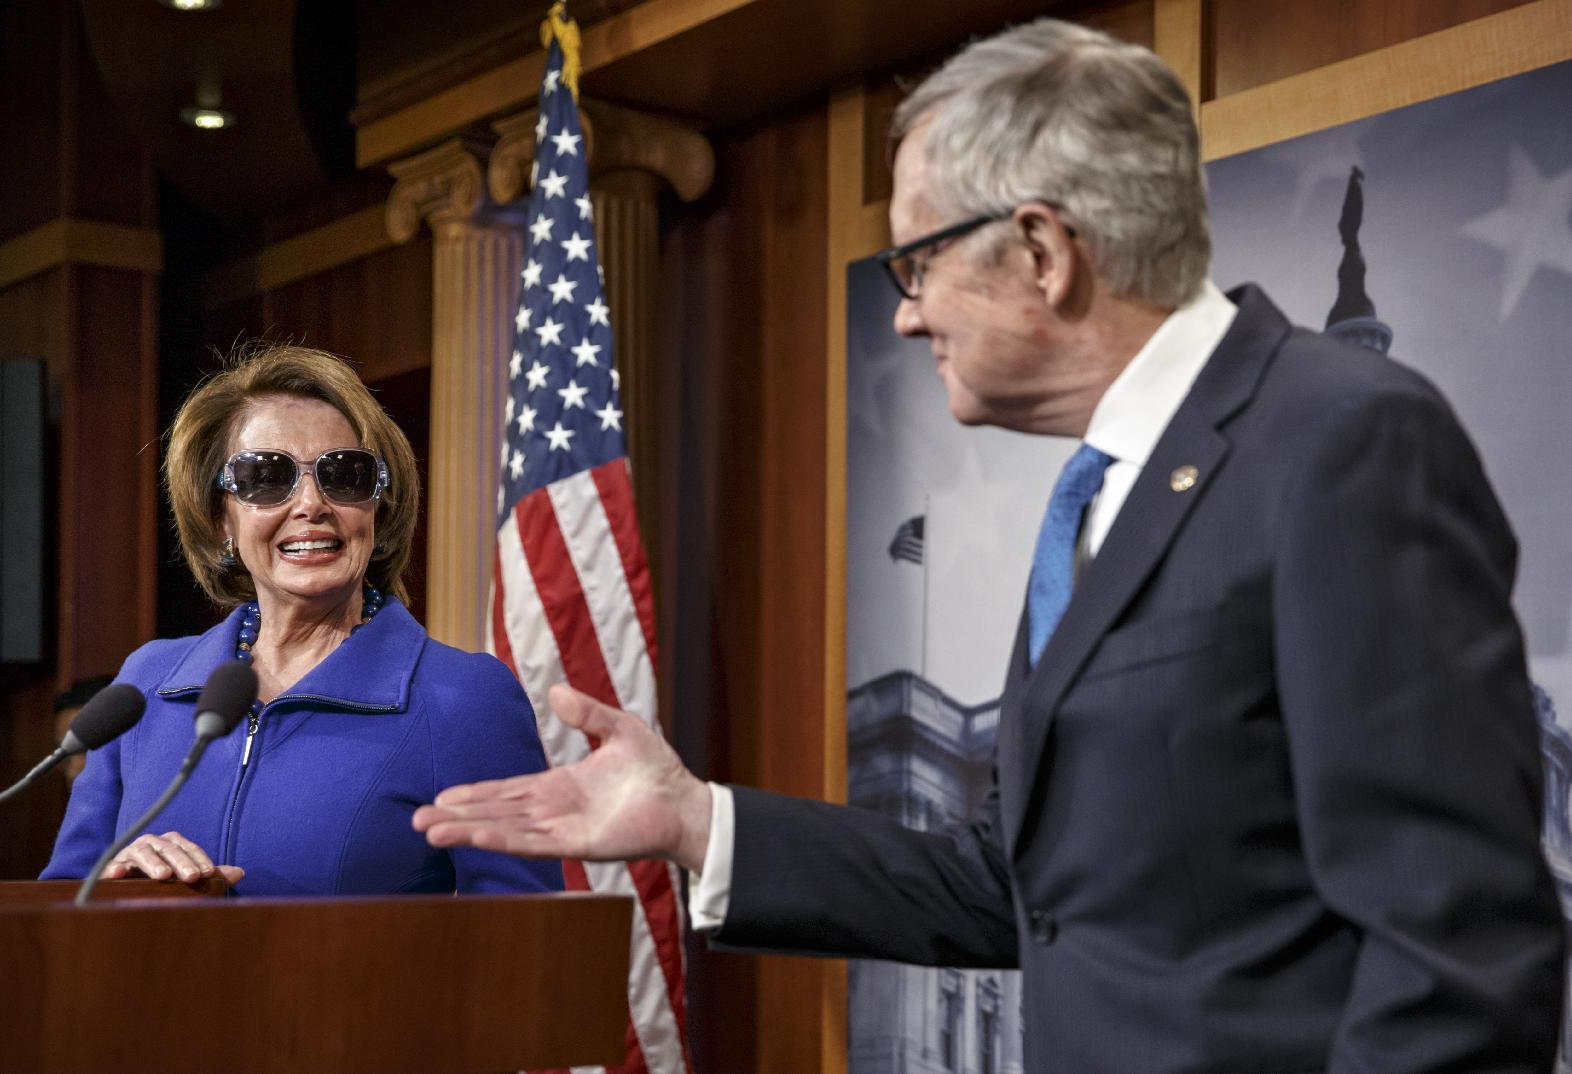 Capitol Hill Buzz: Pelosi teases Reid with dark glasses